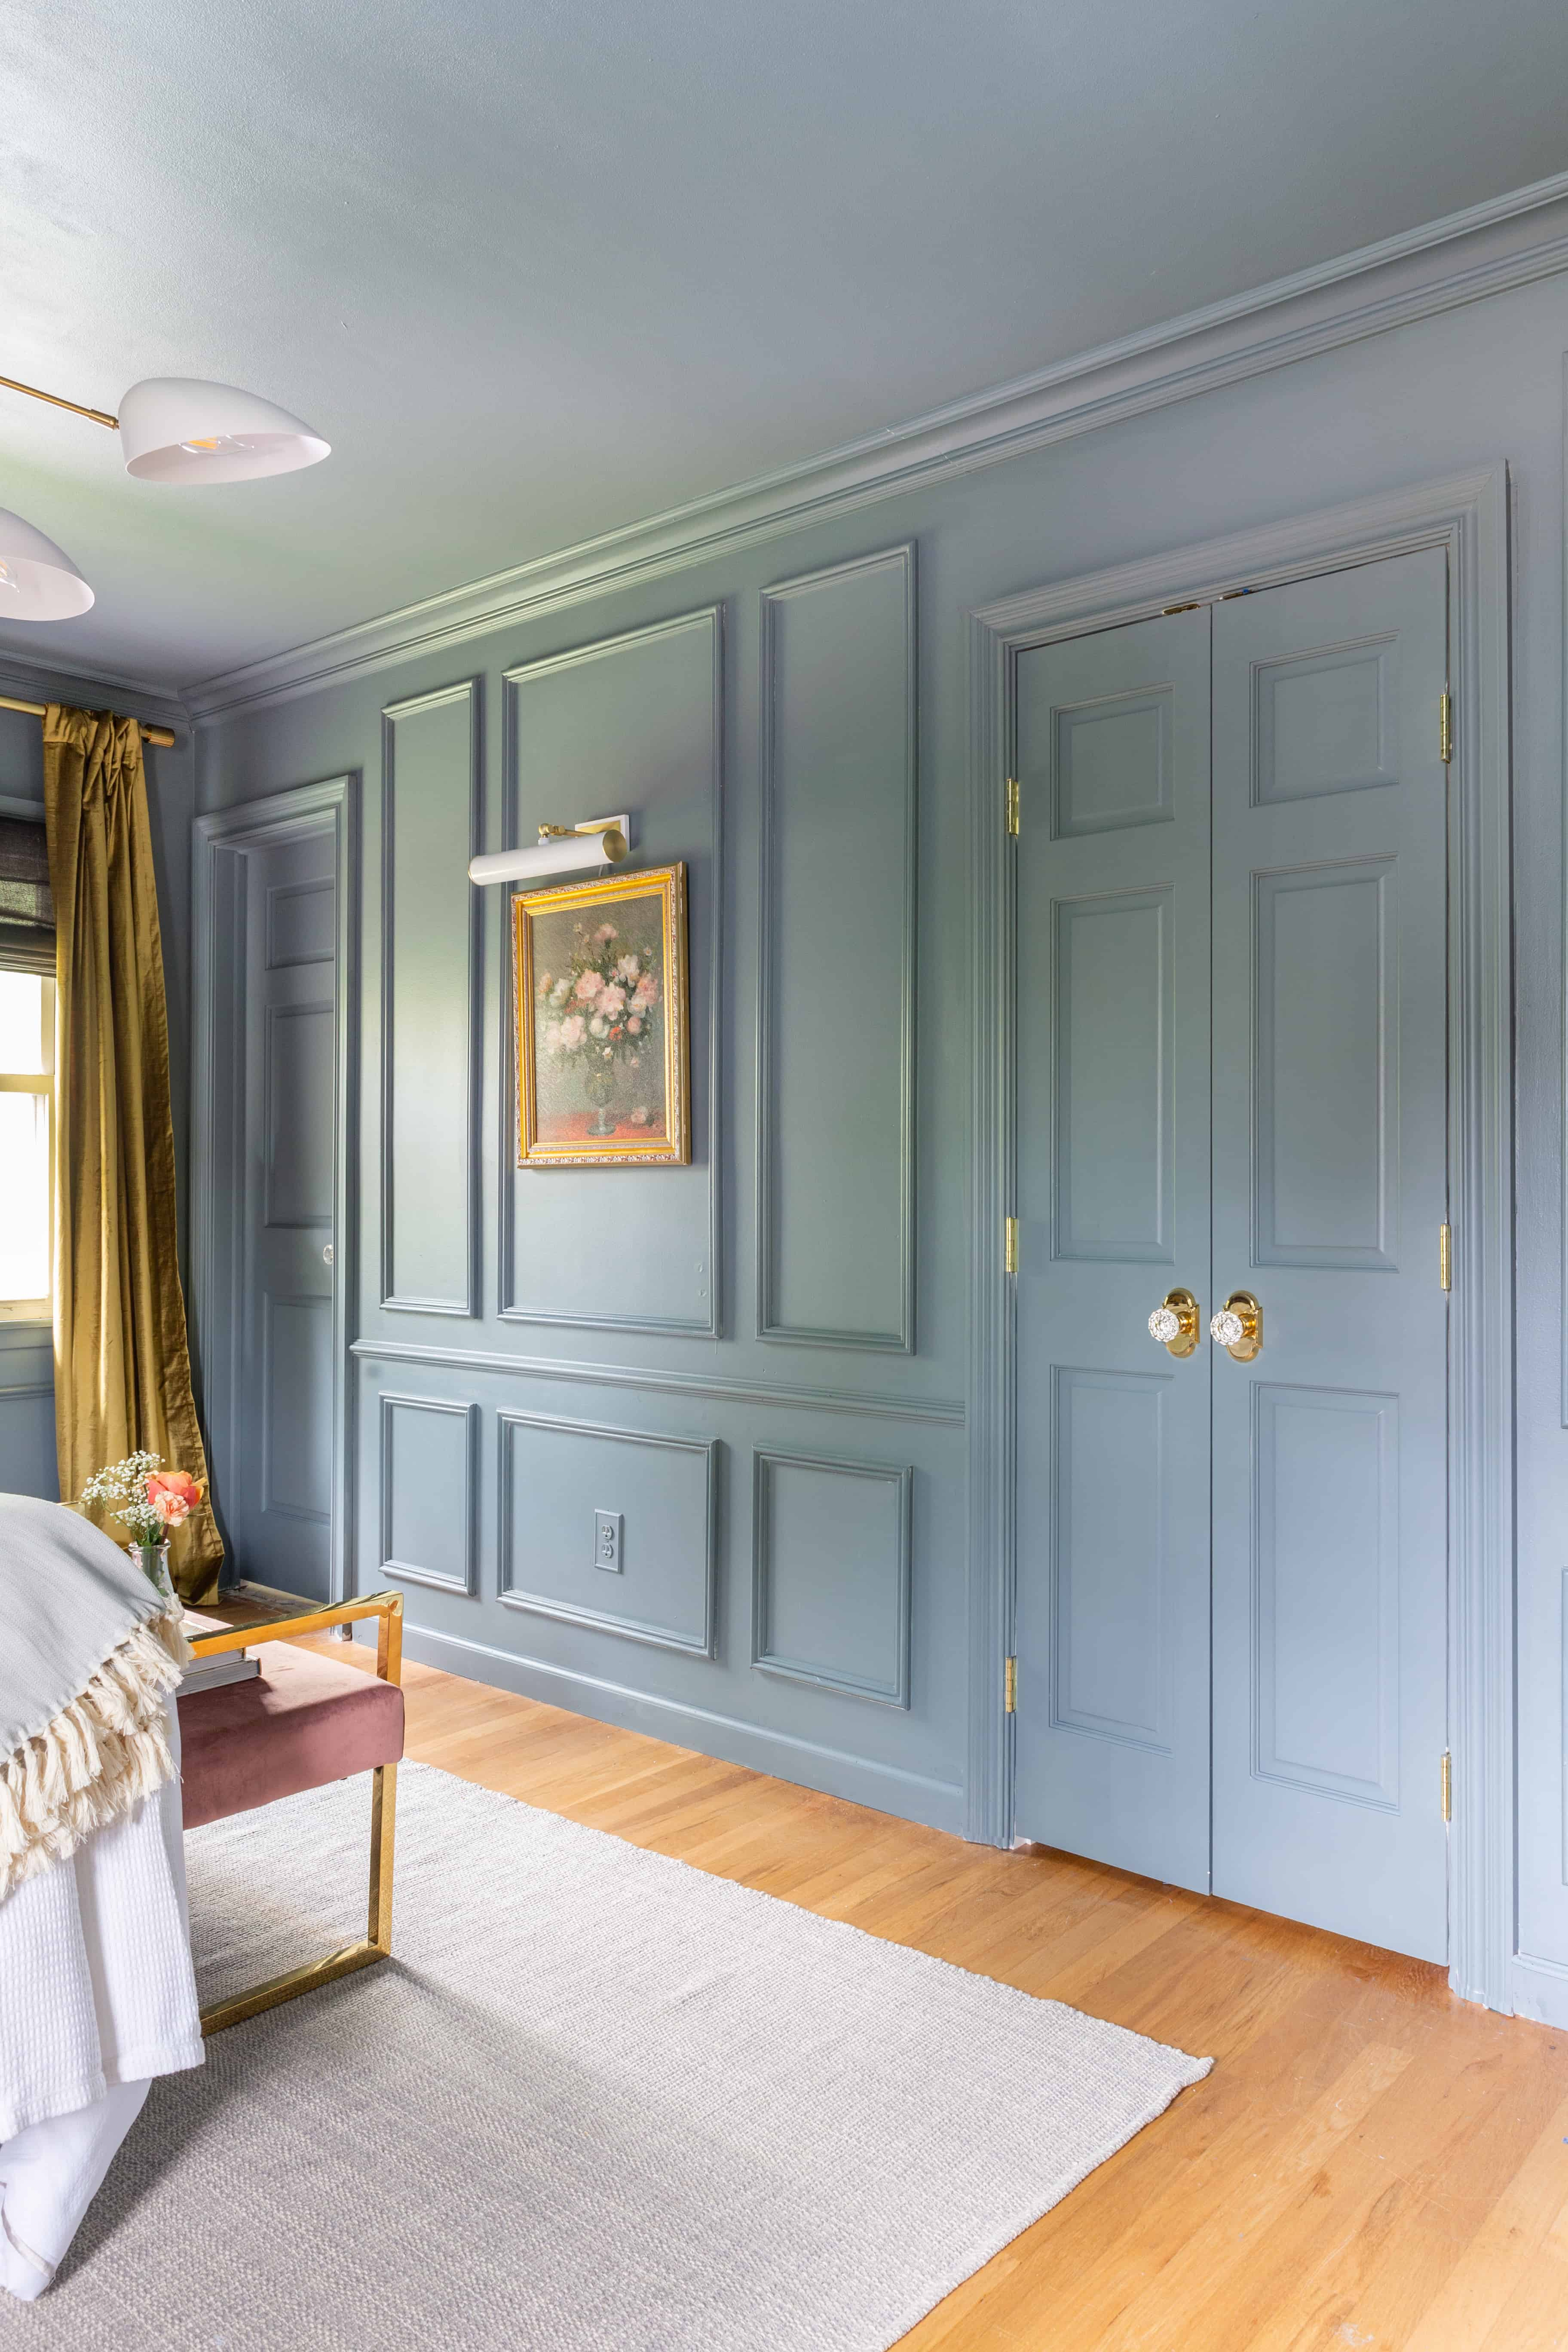 blue-walls-molding-millwork-trim-design-ideas